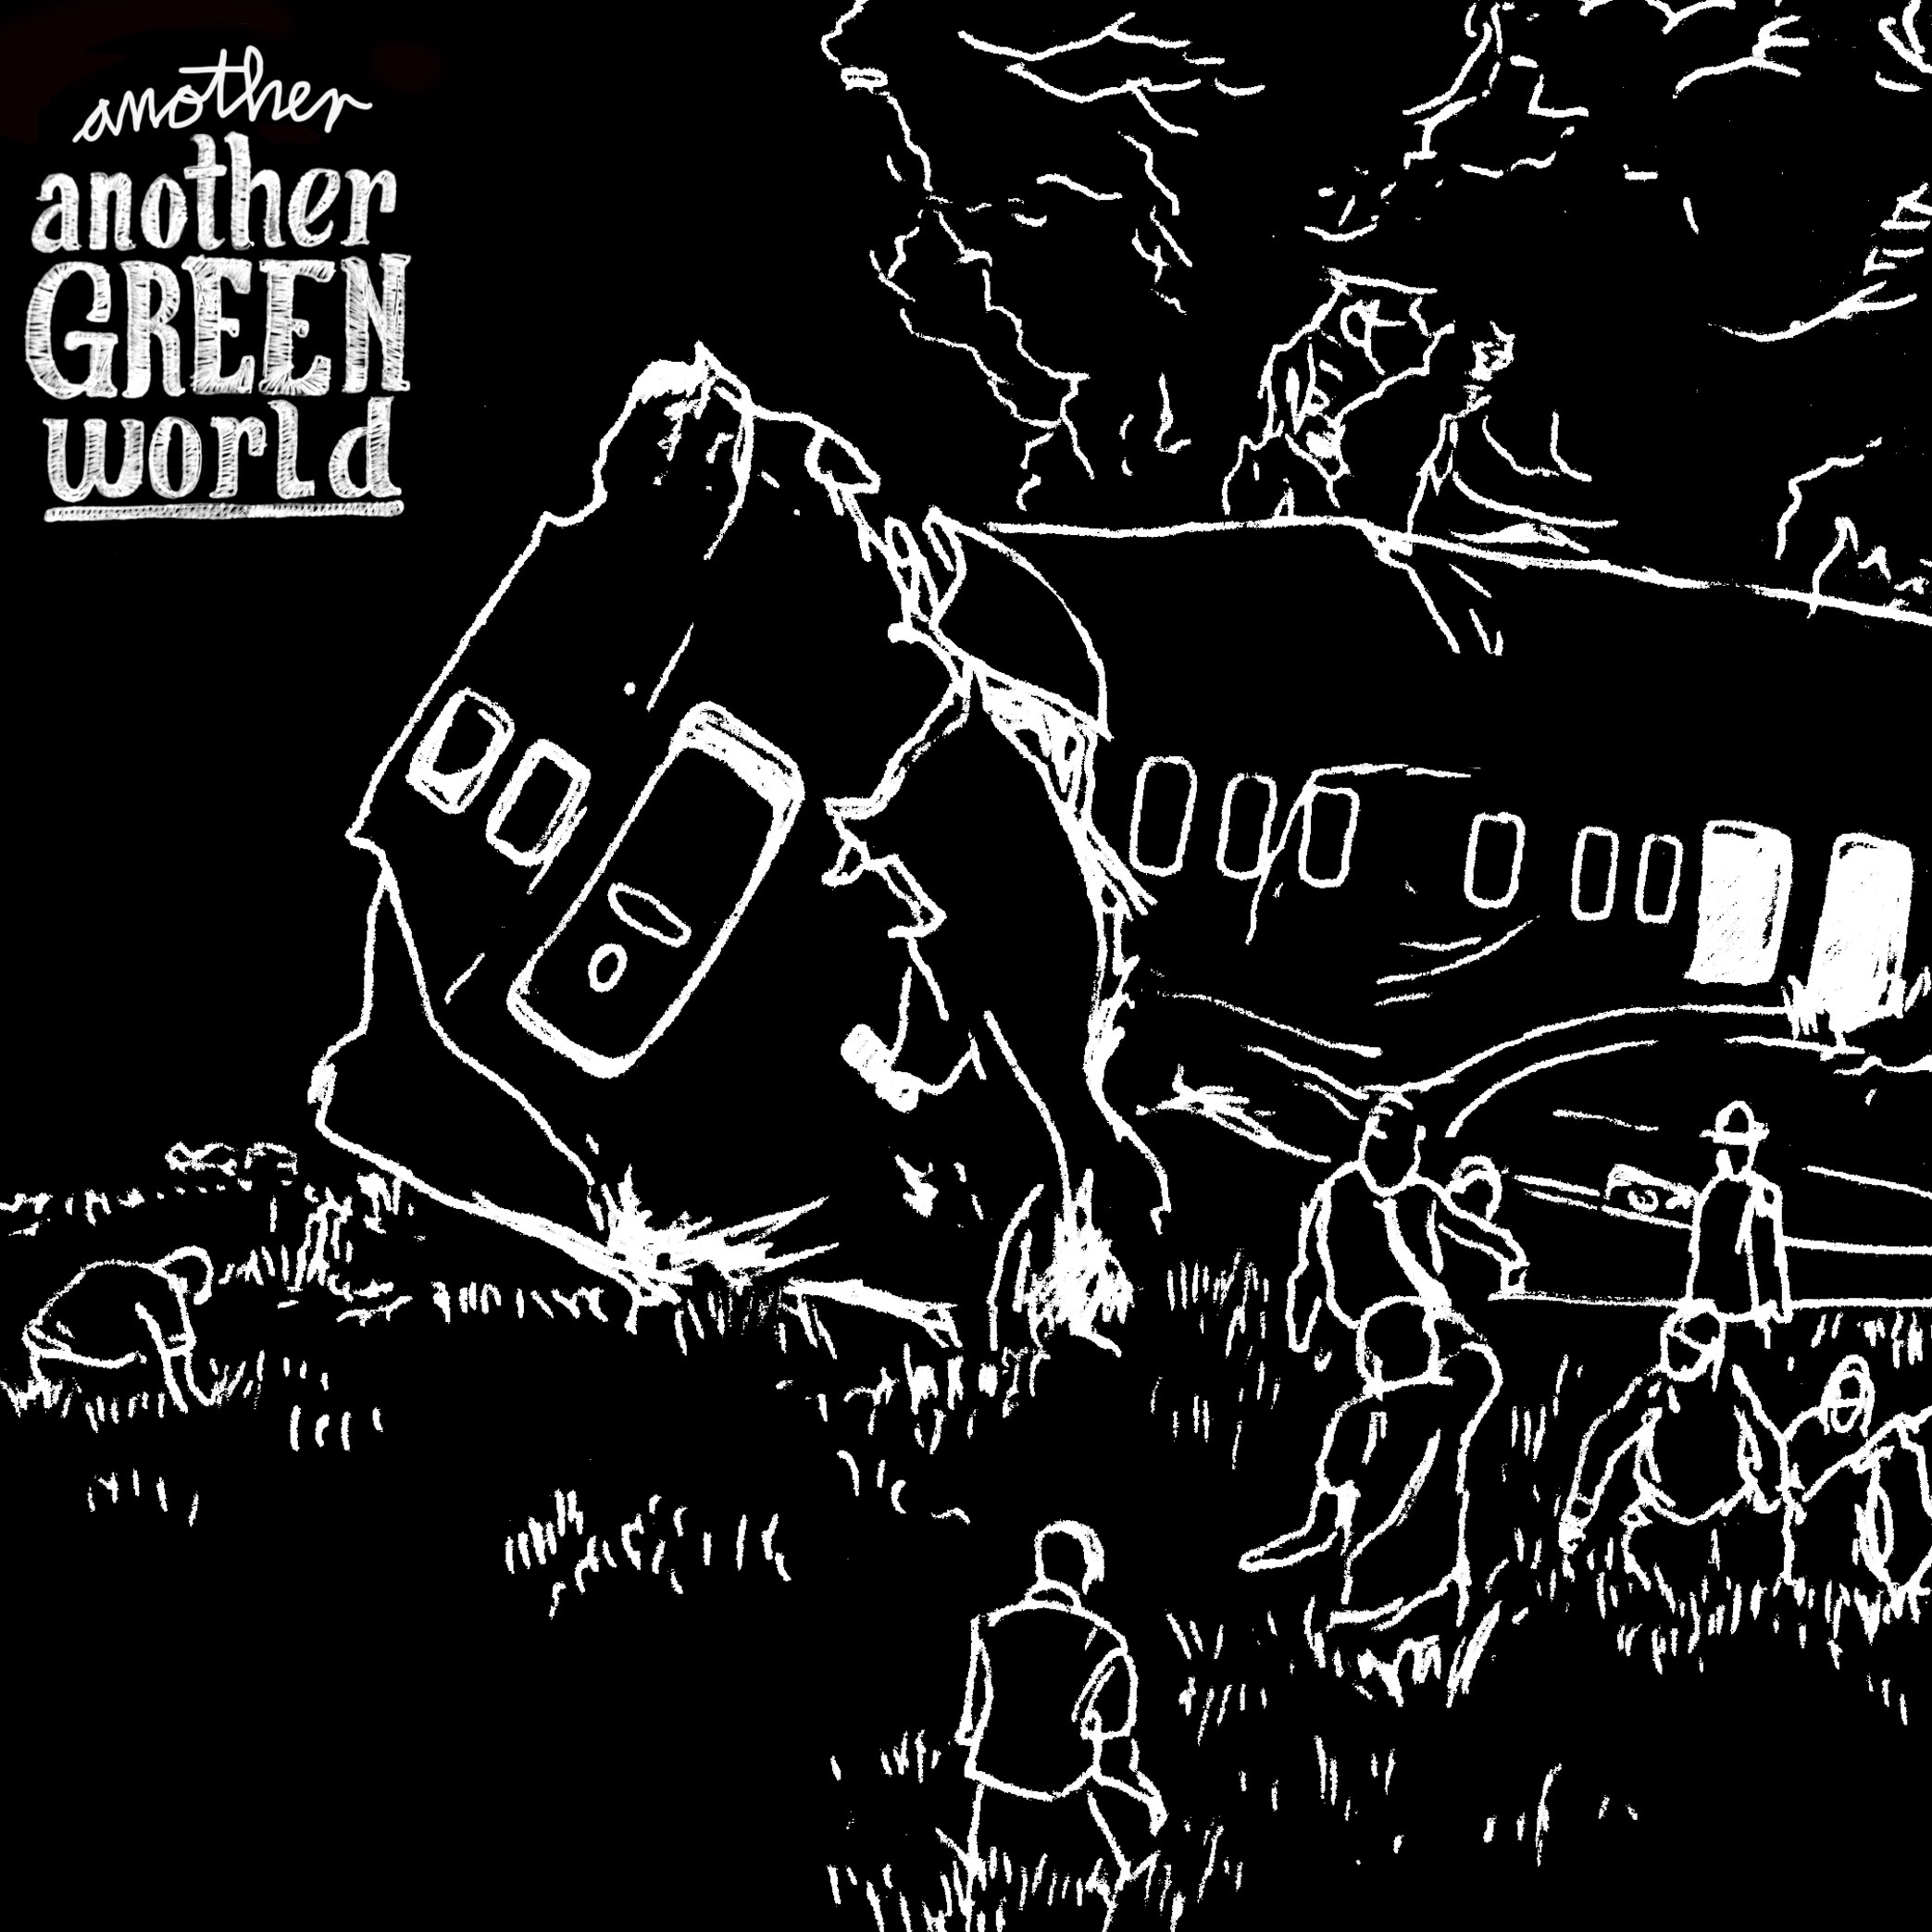 NM041: retro retry 2: another another green world